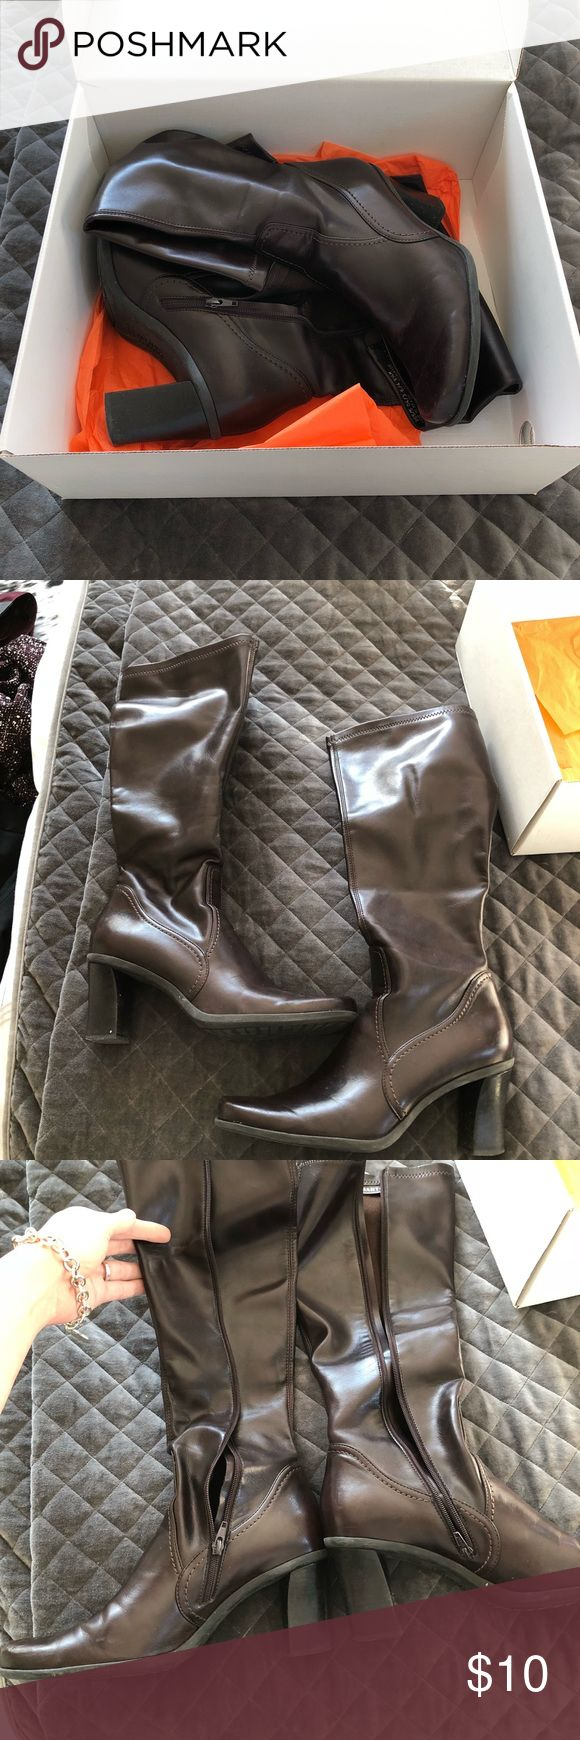 Franco Sarto Knee High Tall Brown Boots Dark brown boots by Franco Sarto. Kept in box, purchased from Gotham City. Tagged size 8.5 but I'm an 8 and they fit perfectly, so they run small. Only noticeable wear is to toes, scuffs, so priced accordingly and sold AS IS. Minimal heel wear, zippers work great. I video and photo items as they're packed at post office, so there's no question of condition. I ship fast! Franco Sarto Shoes Heeled Boots